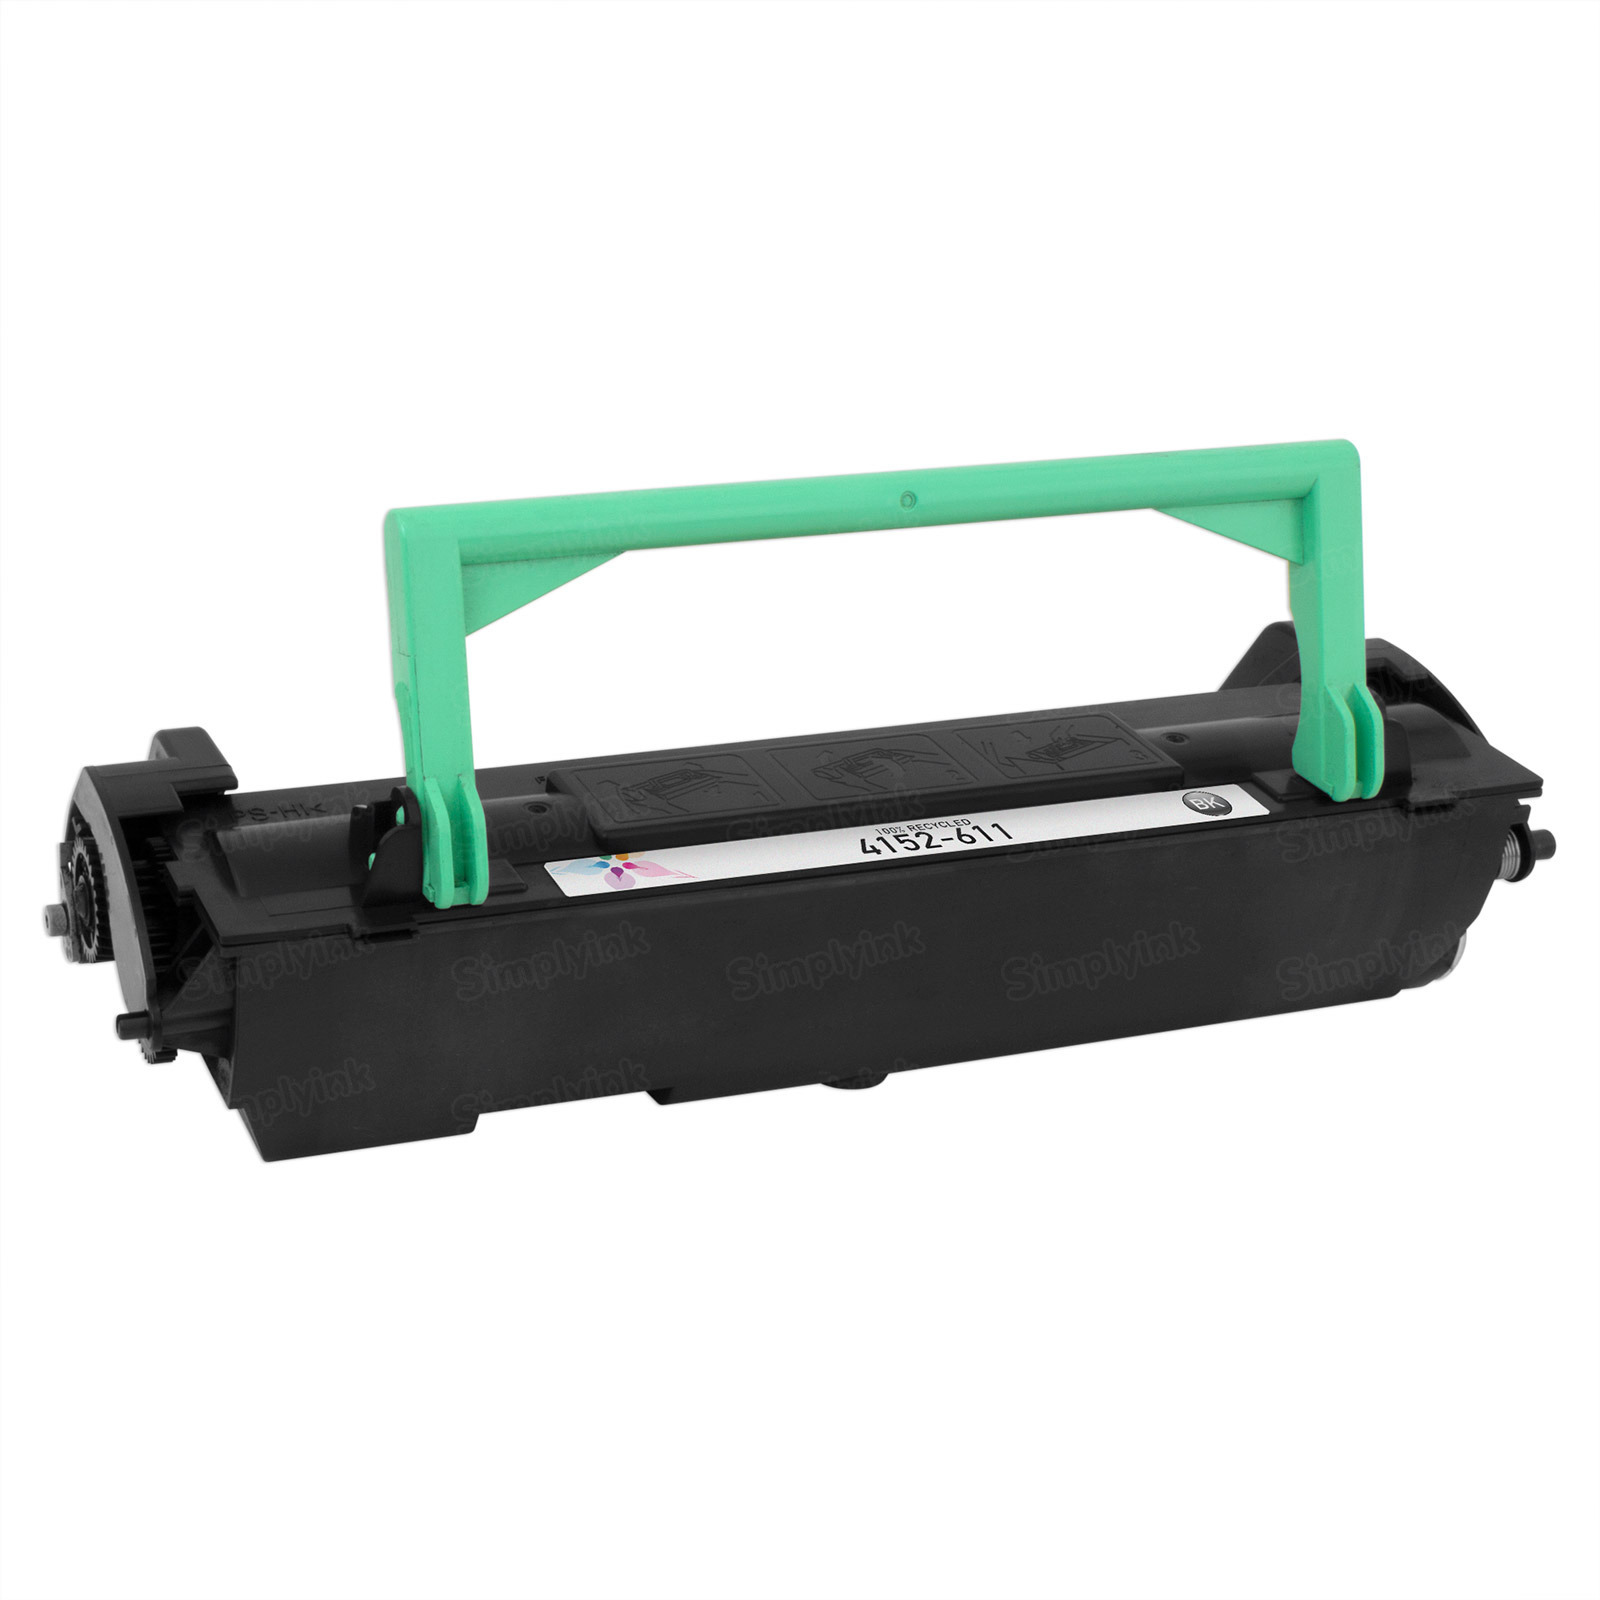 Remanufactured Konica-Minolta 4152-611 Black Toner